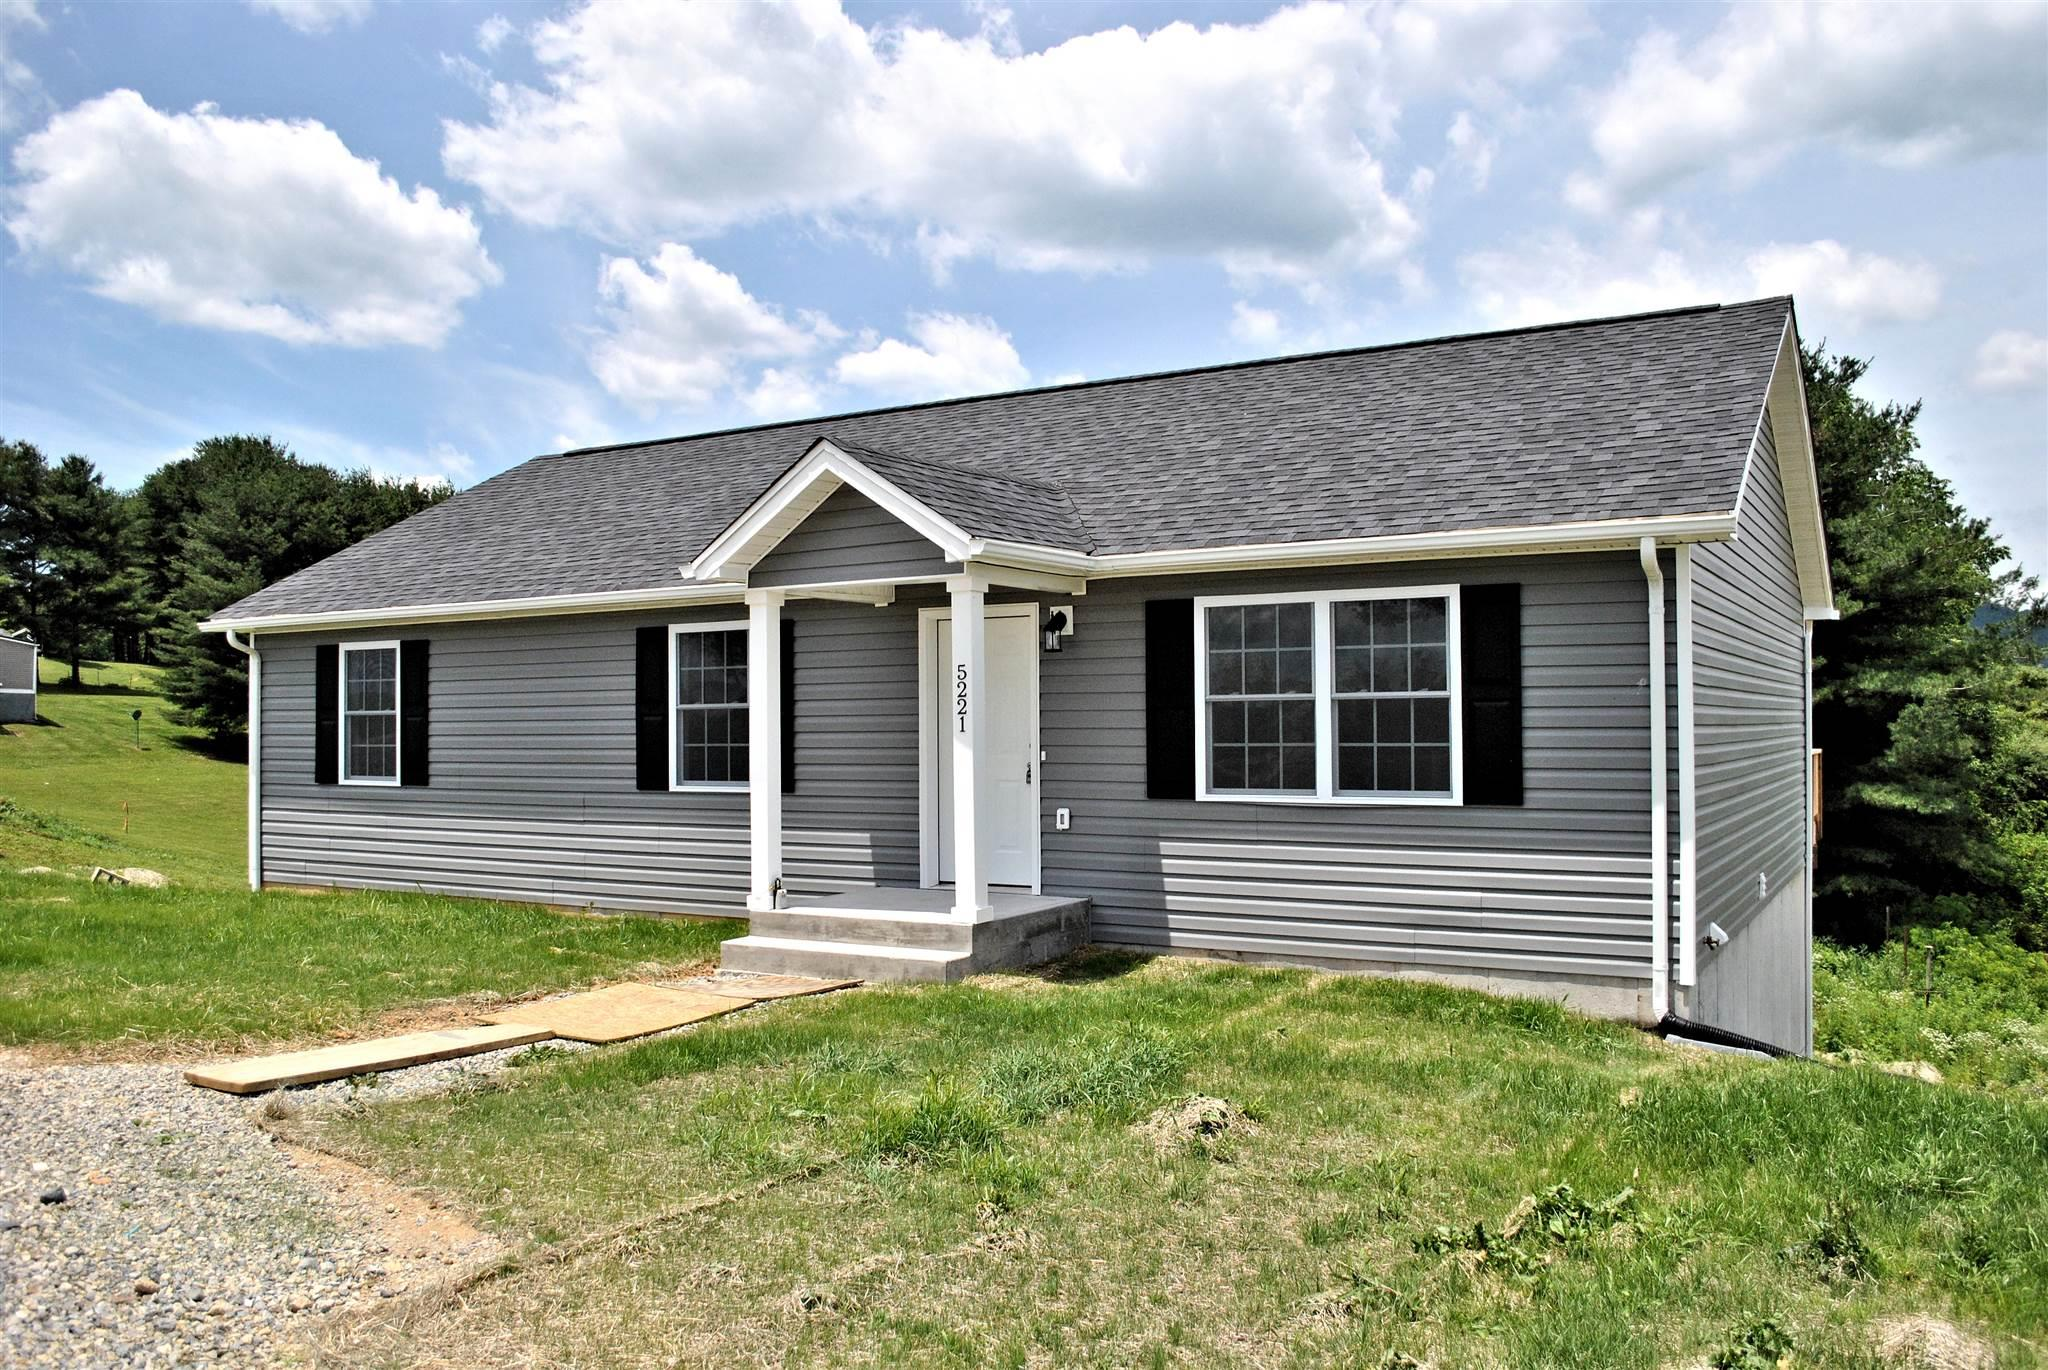 Be the first one to call this brand new property home!  The 3 bedroom/2 full bath one level ranch style home has a full 10' poured concrete basement for future expansion.  The home will be very efficient with 2x6 exterior walls and a heat pump.  The kitchen boast Shaker Style maple/birch cabinets with Stainless Steel appliances.  The large great room is open to the dining area/kitchen area.  The master suite and laundry are both on the main level for easy living!  There is a large rear 12x16 deck off the back.  Call to set up an appointment to see this great property!